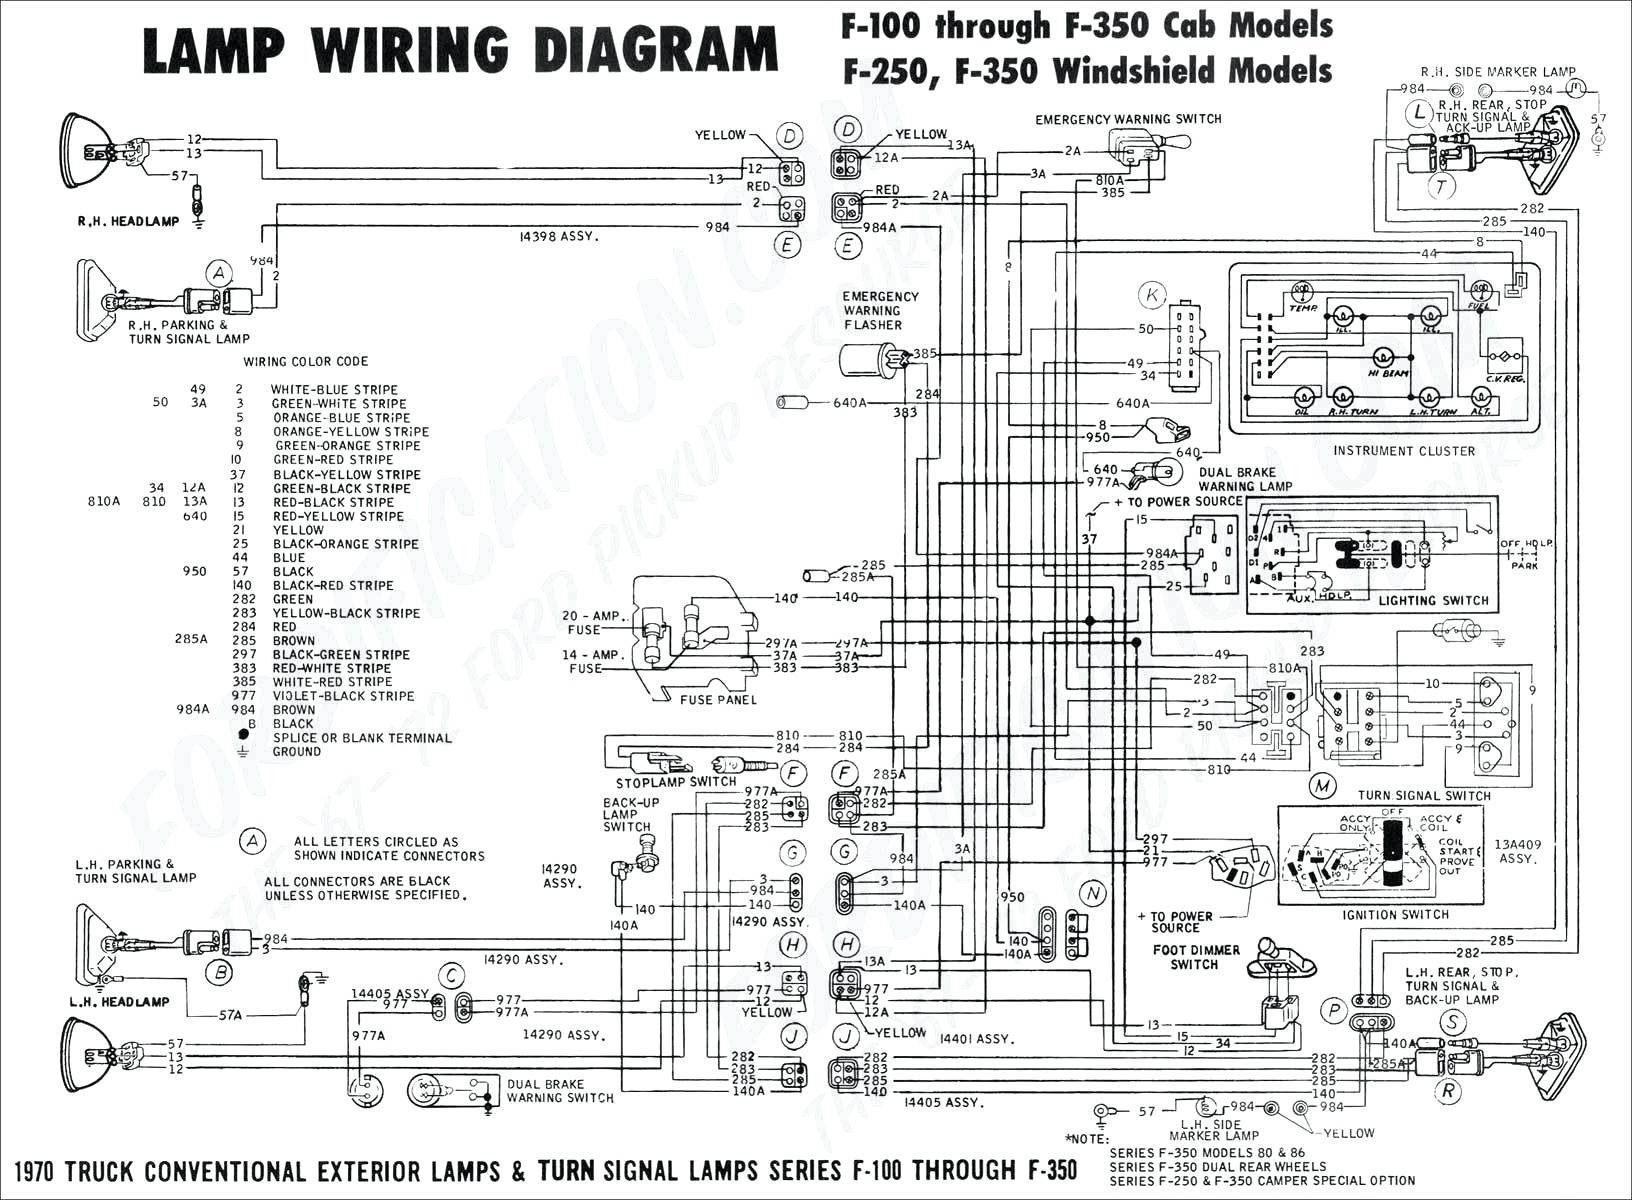 2011 Ford F 250 Tail Light Wiring Diagram Wiring Diagram Of Honda Xrm 110 Srd04actuator Sampwire Jeanjaures37 Fr